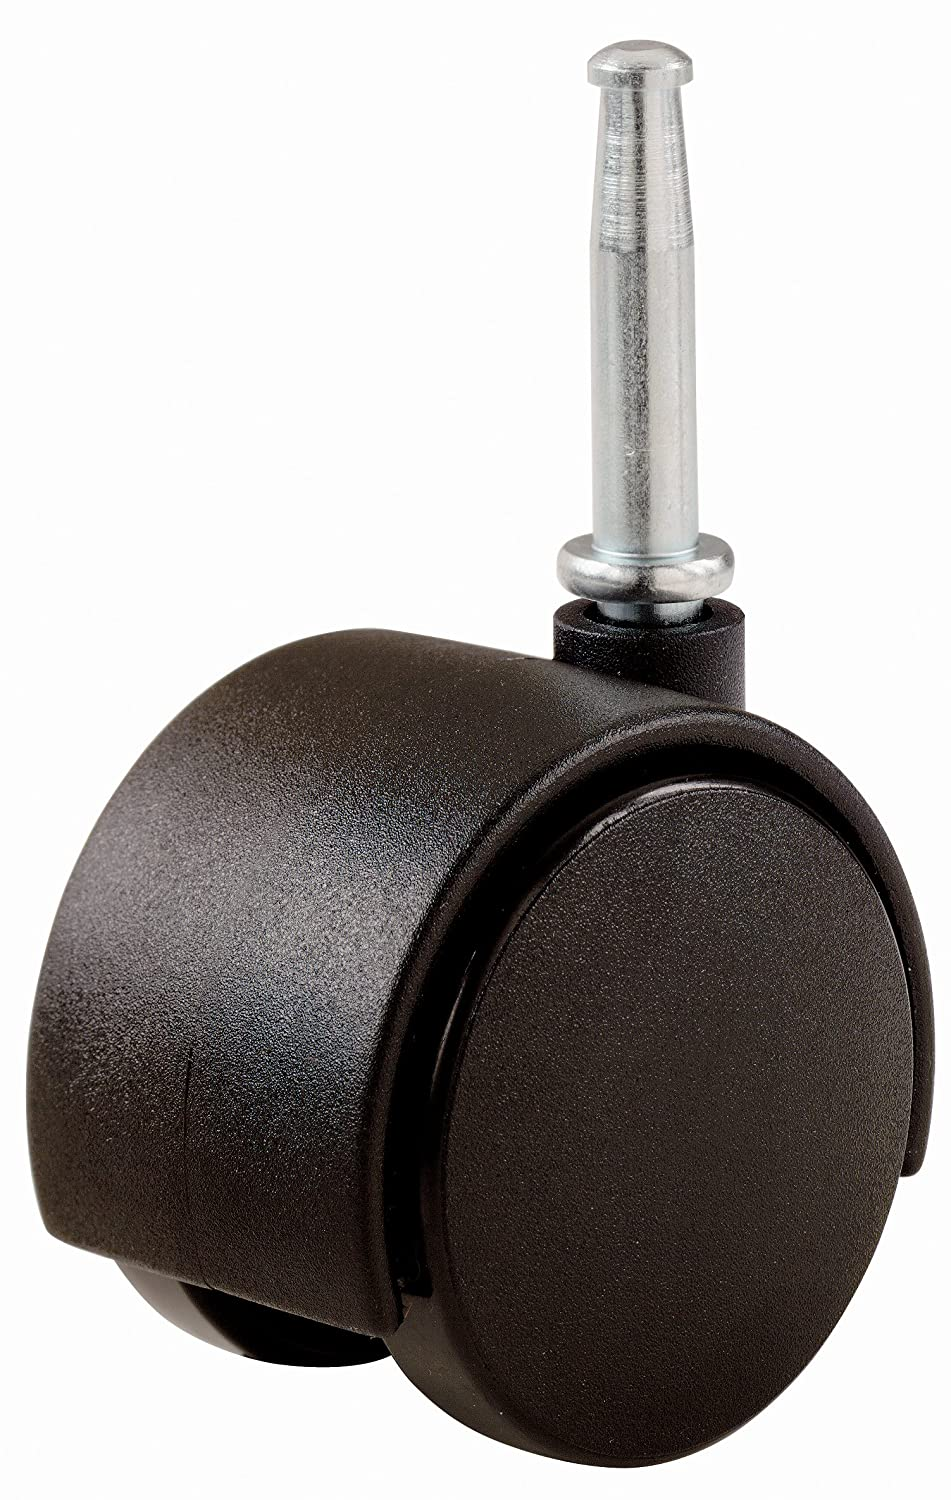 Twin Wheel with Brake 5//16-Inch Stem Diameter 2-Pack Shepherd Hardware 9406 2-Inch Office Chair Caster 75lb Load Capacity